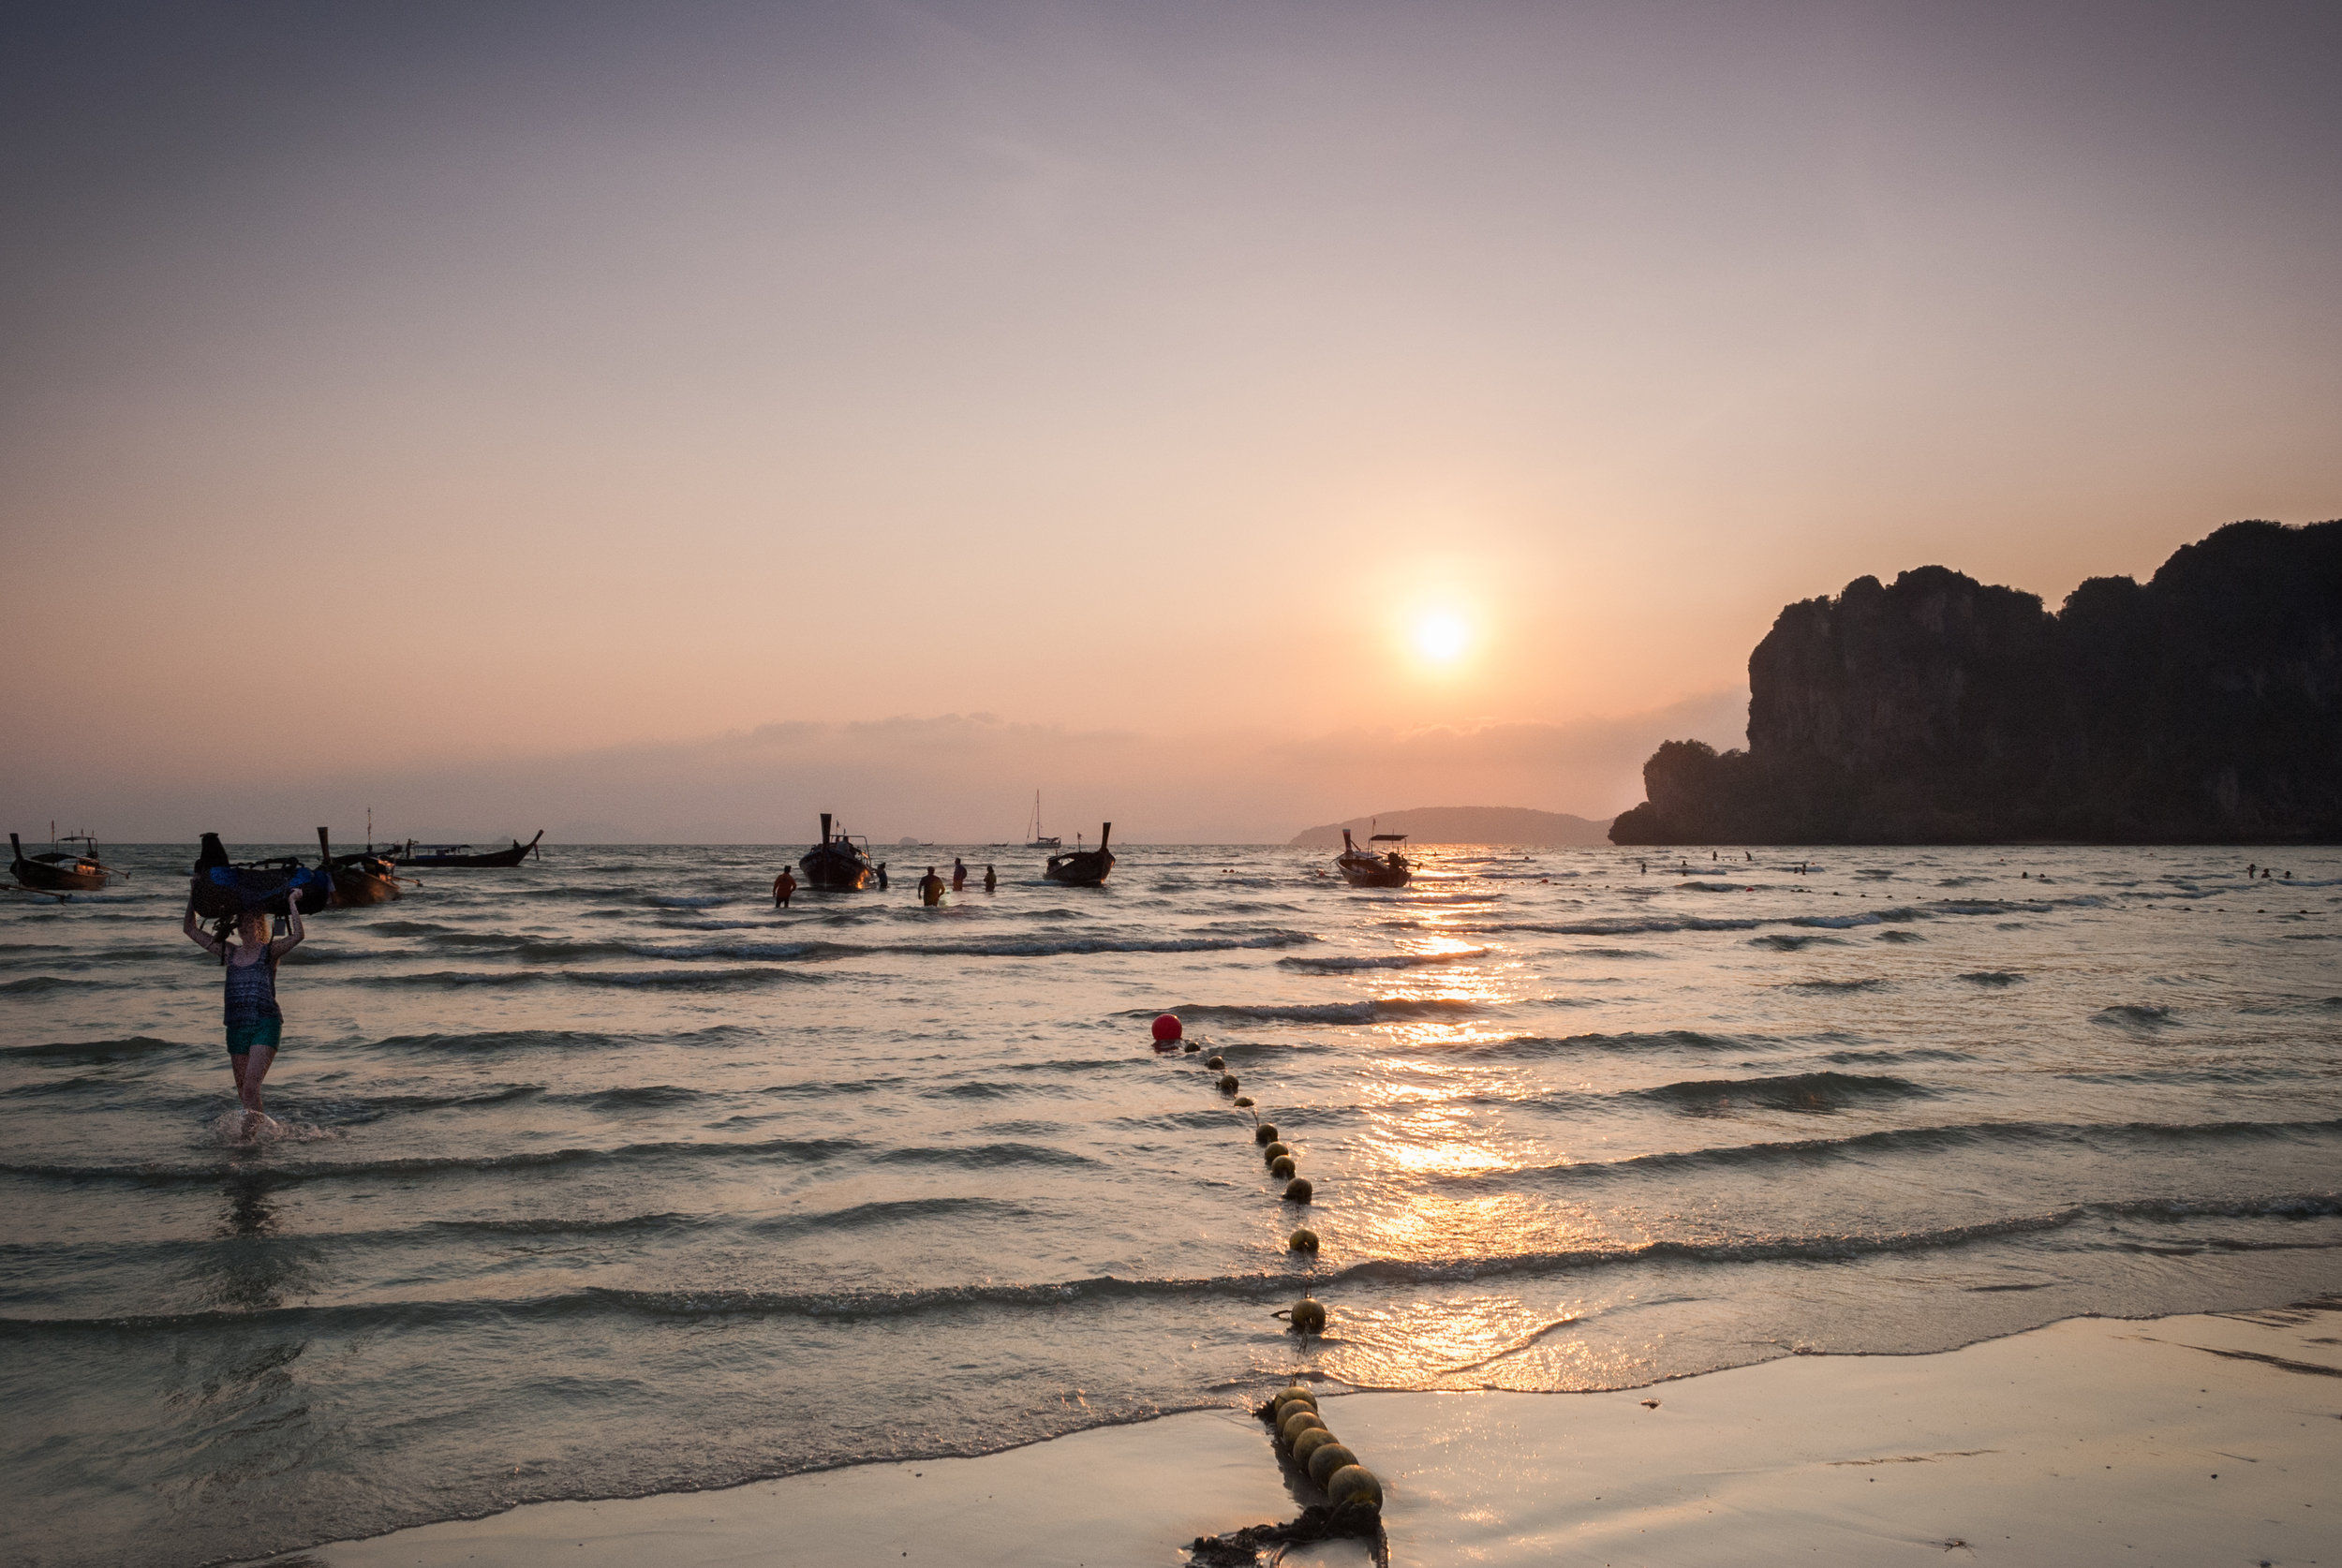 In such a remote place like Railay Beach, sometimes the only way to get there is to walk. Railay Beach, Thailand